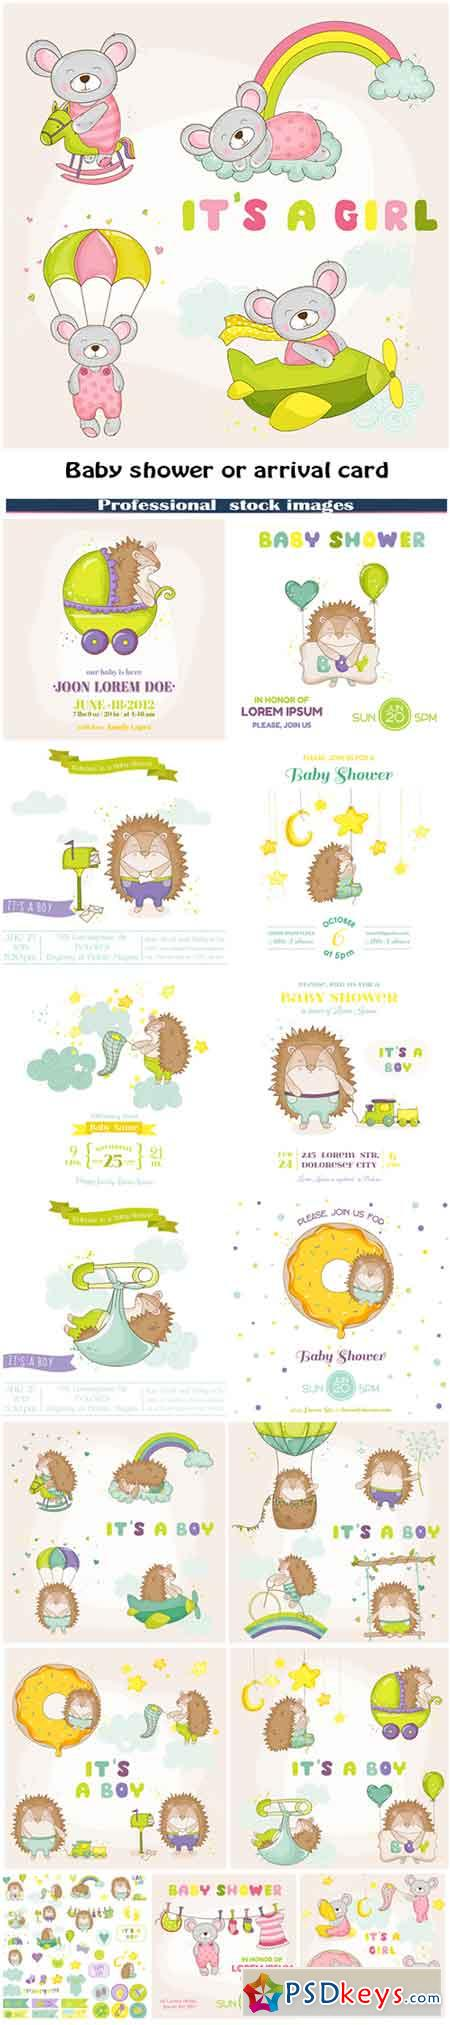 Baby shower or arrival card - Baby hedgehog and baby mouse